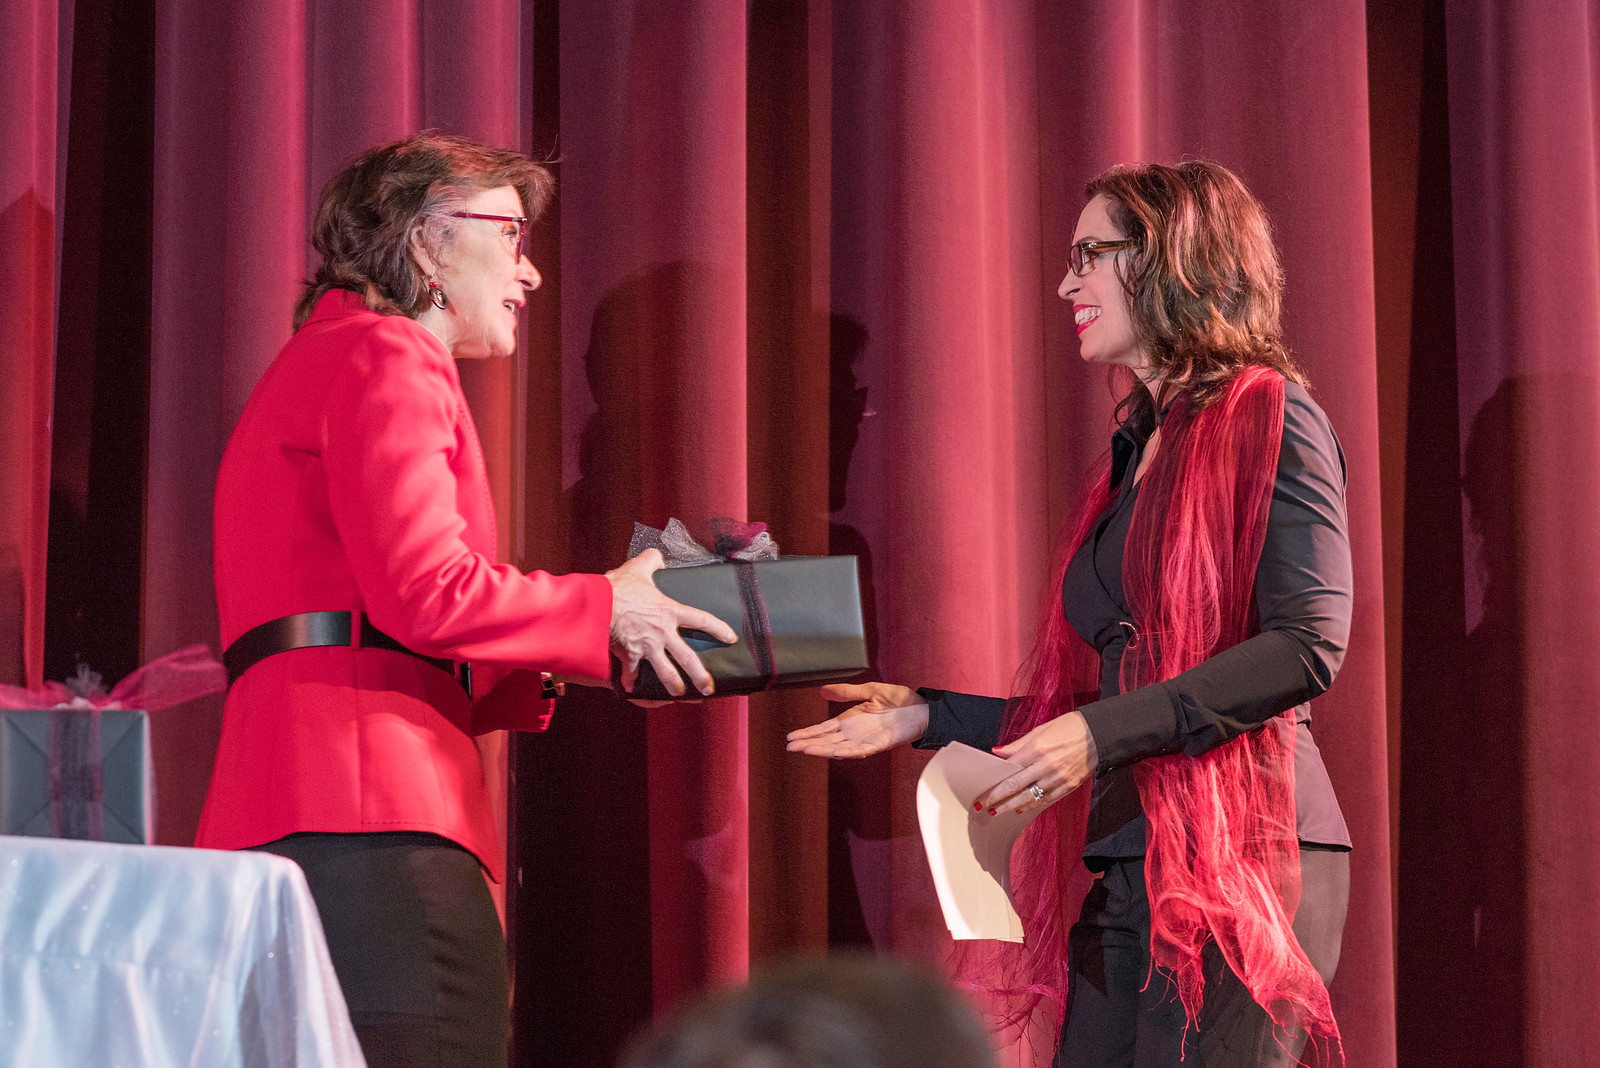 President Gayle Hutchinson (left) thanks Distinguished Alumni J'Anna Jacoby (right) as guests and honorees during the Distinguished Alumni Dinner on Friday, March 24, 2017 in Chico, Calif. (Jason Halley/University Photographer)